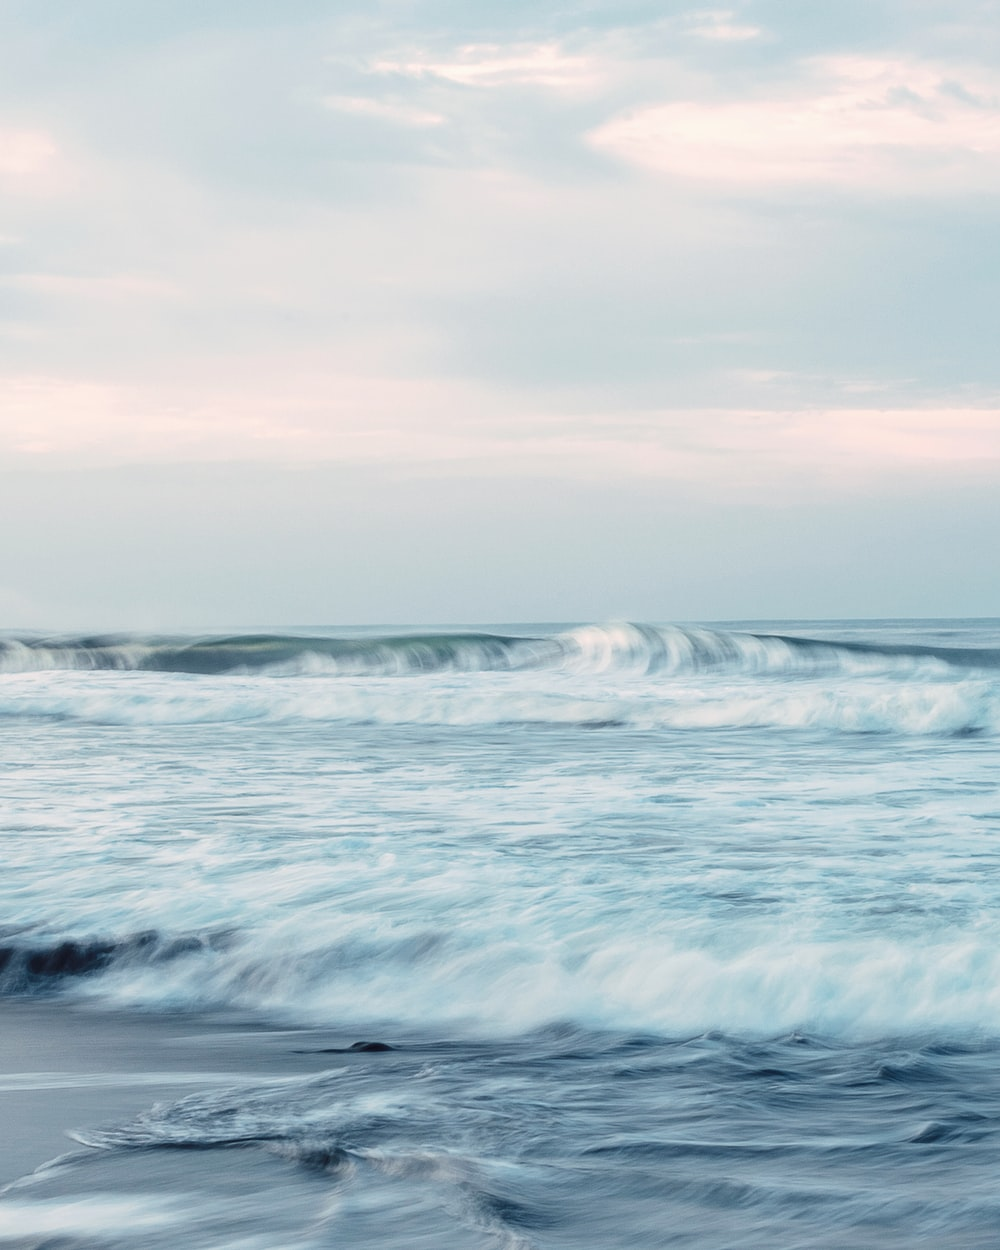 time lapse photography of ocean wave